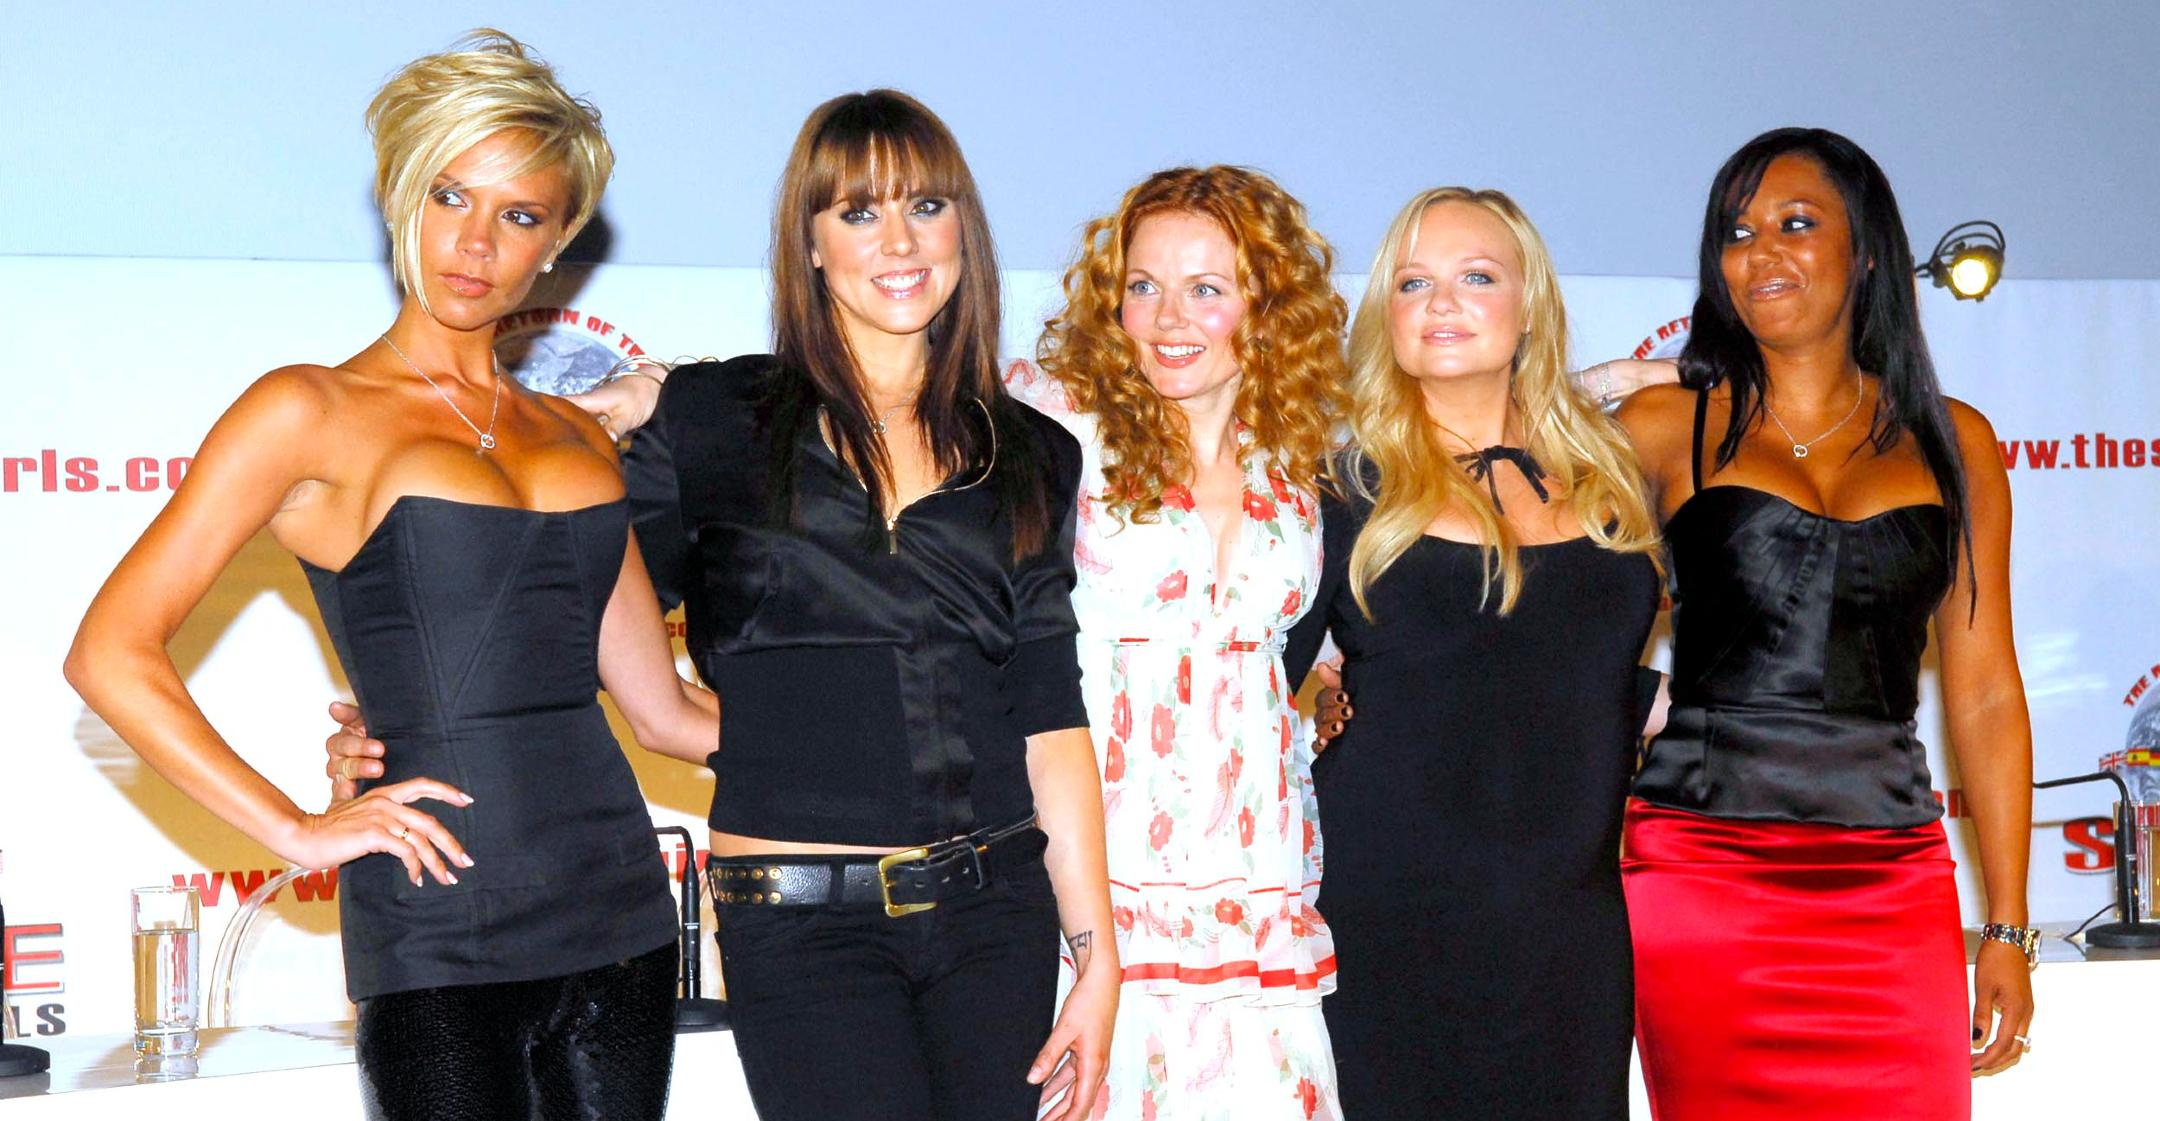 spice girls are debuting unreleased song in honor of bands th anniversary